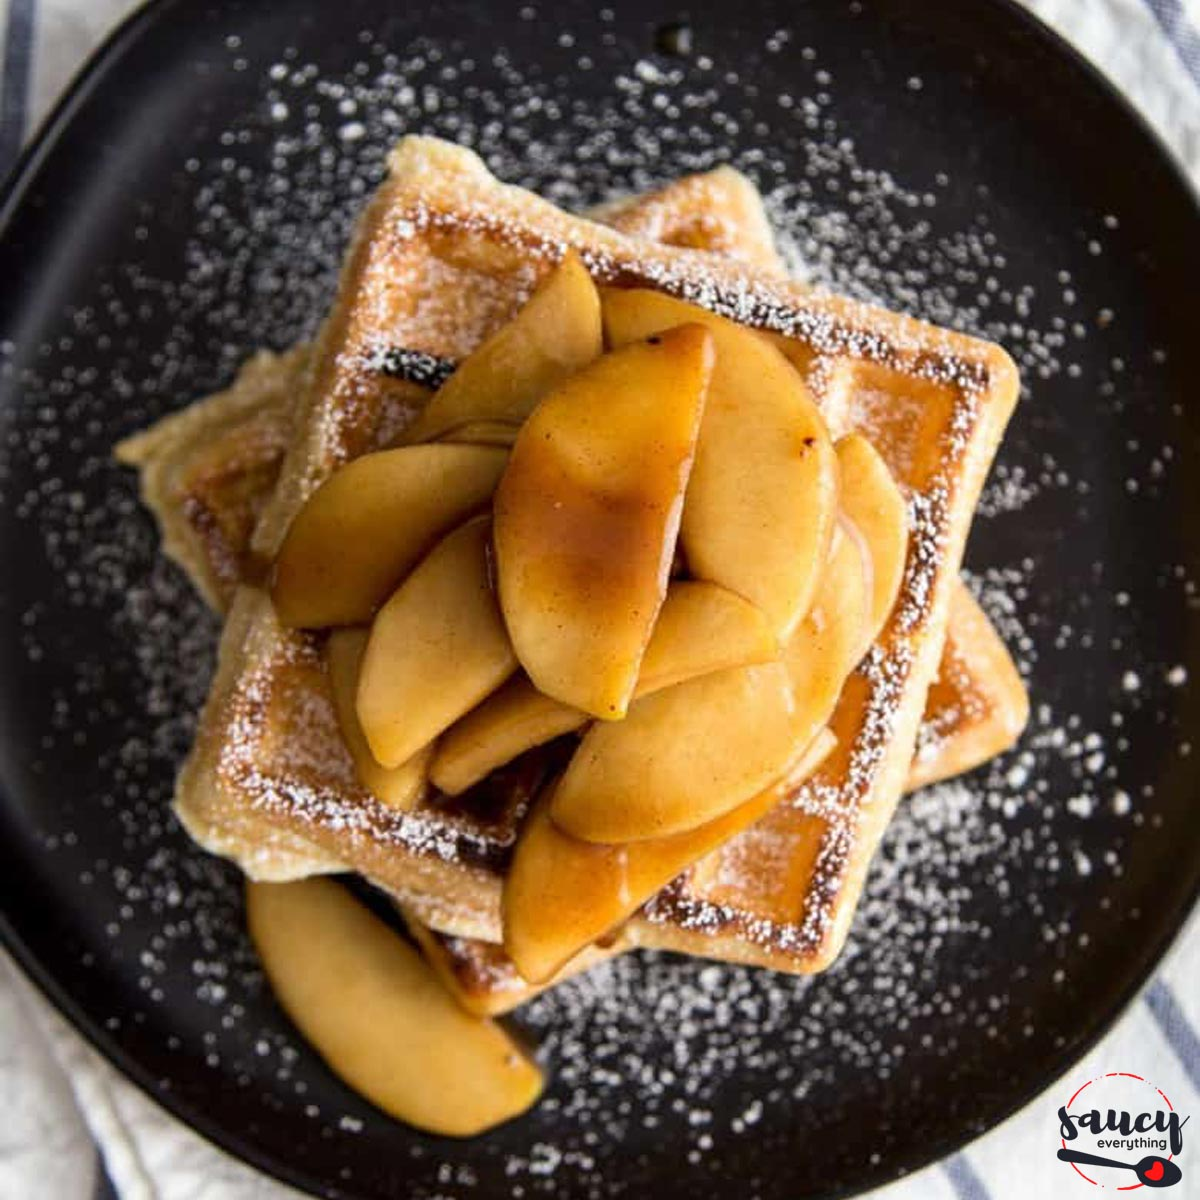 Sauteed apples on waffles with powdered sugar, on a black plate